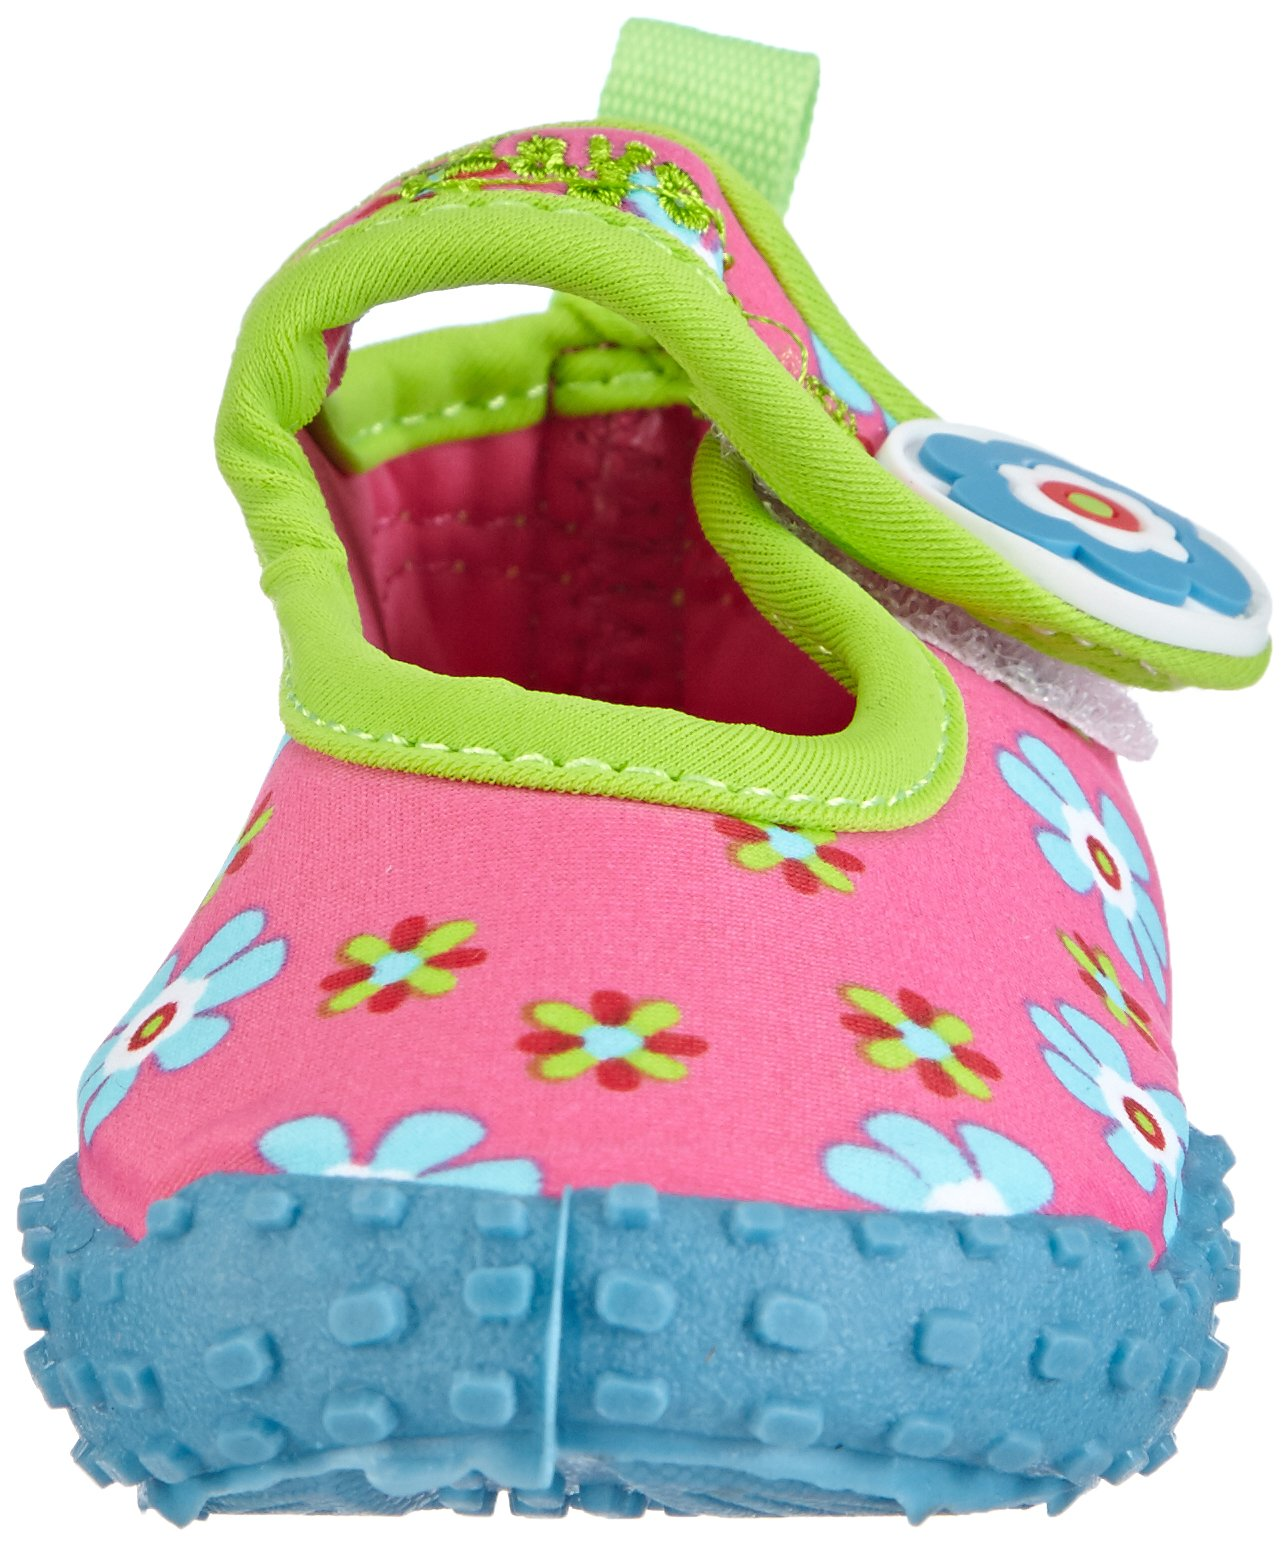 Playshoes Girl's UV Protection Flower Collection Aqua Swimming/Beach Shoes (4.5 M US Toddler) by Playshoes (Image #4)